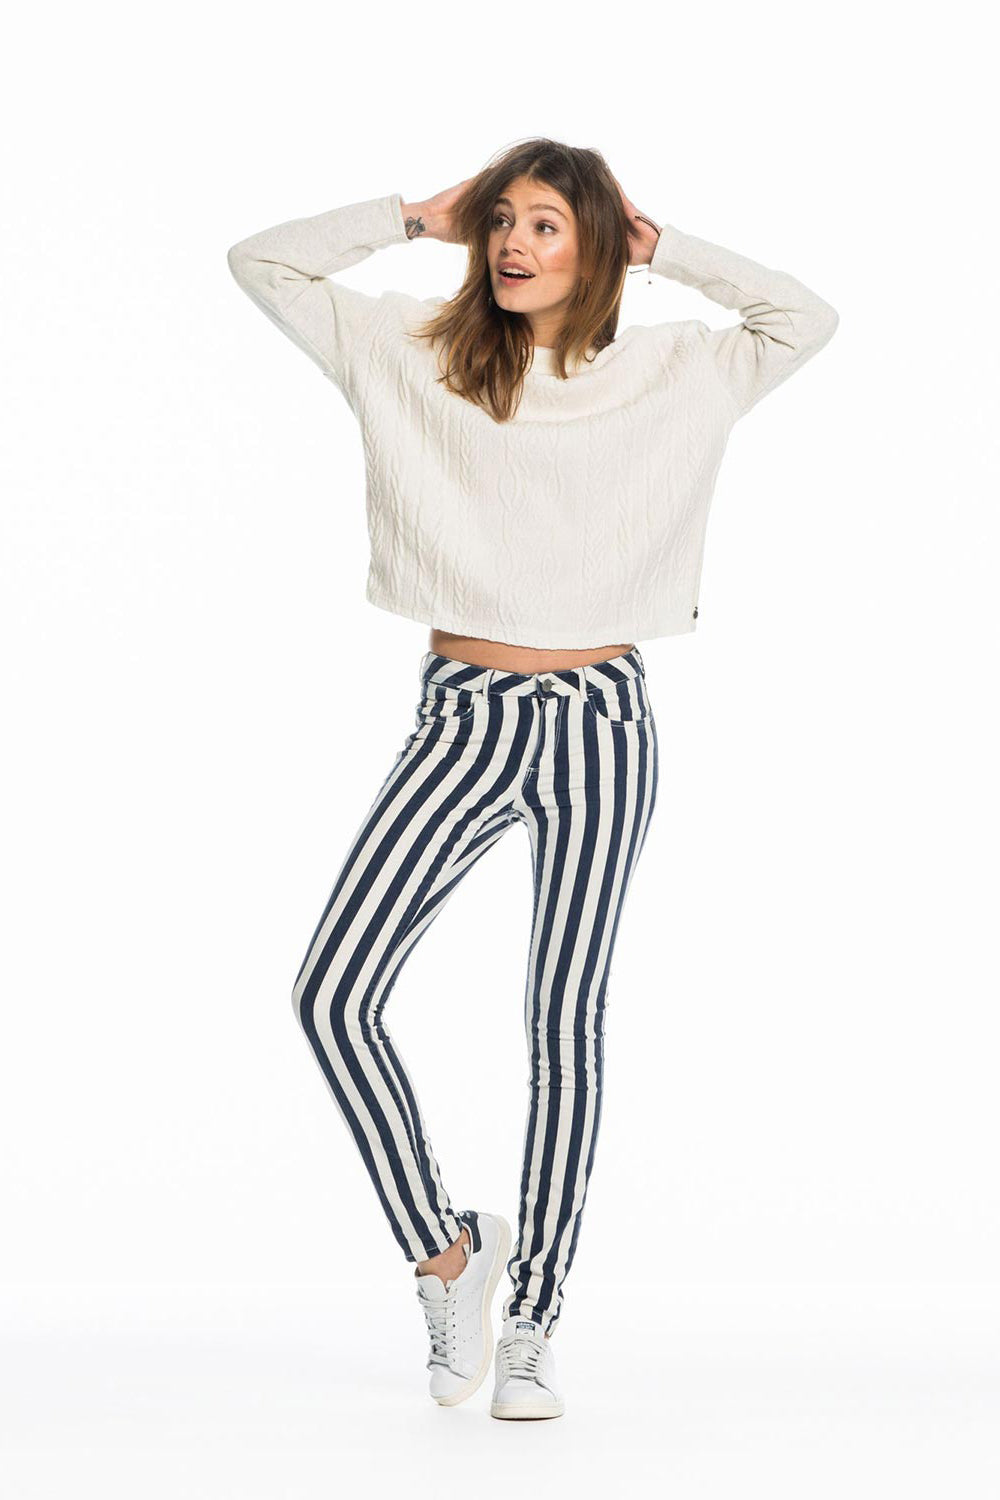 SCOTCH AND SODA - La Bohemienne Skinny Pants online at PAYA boutique